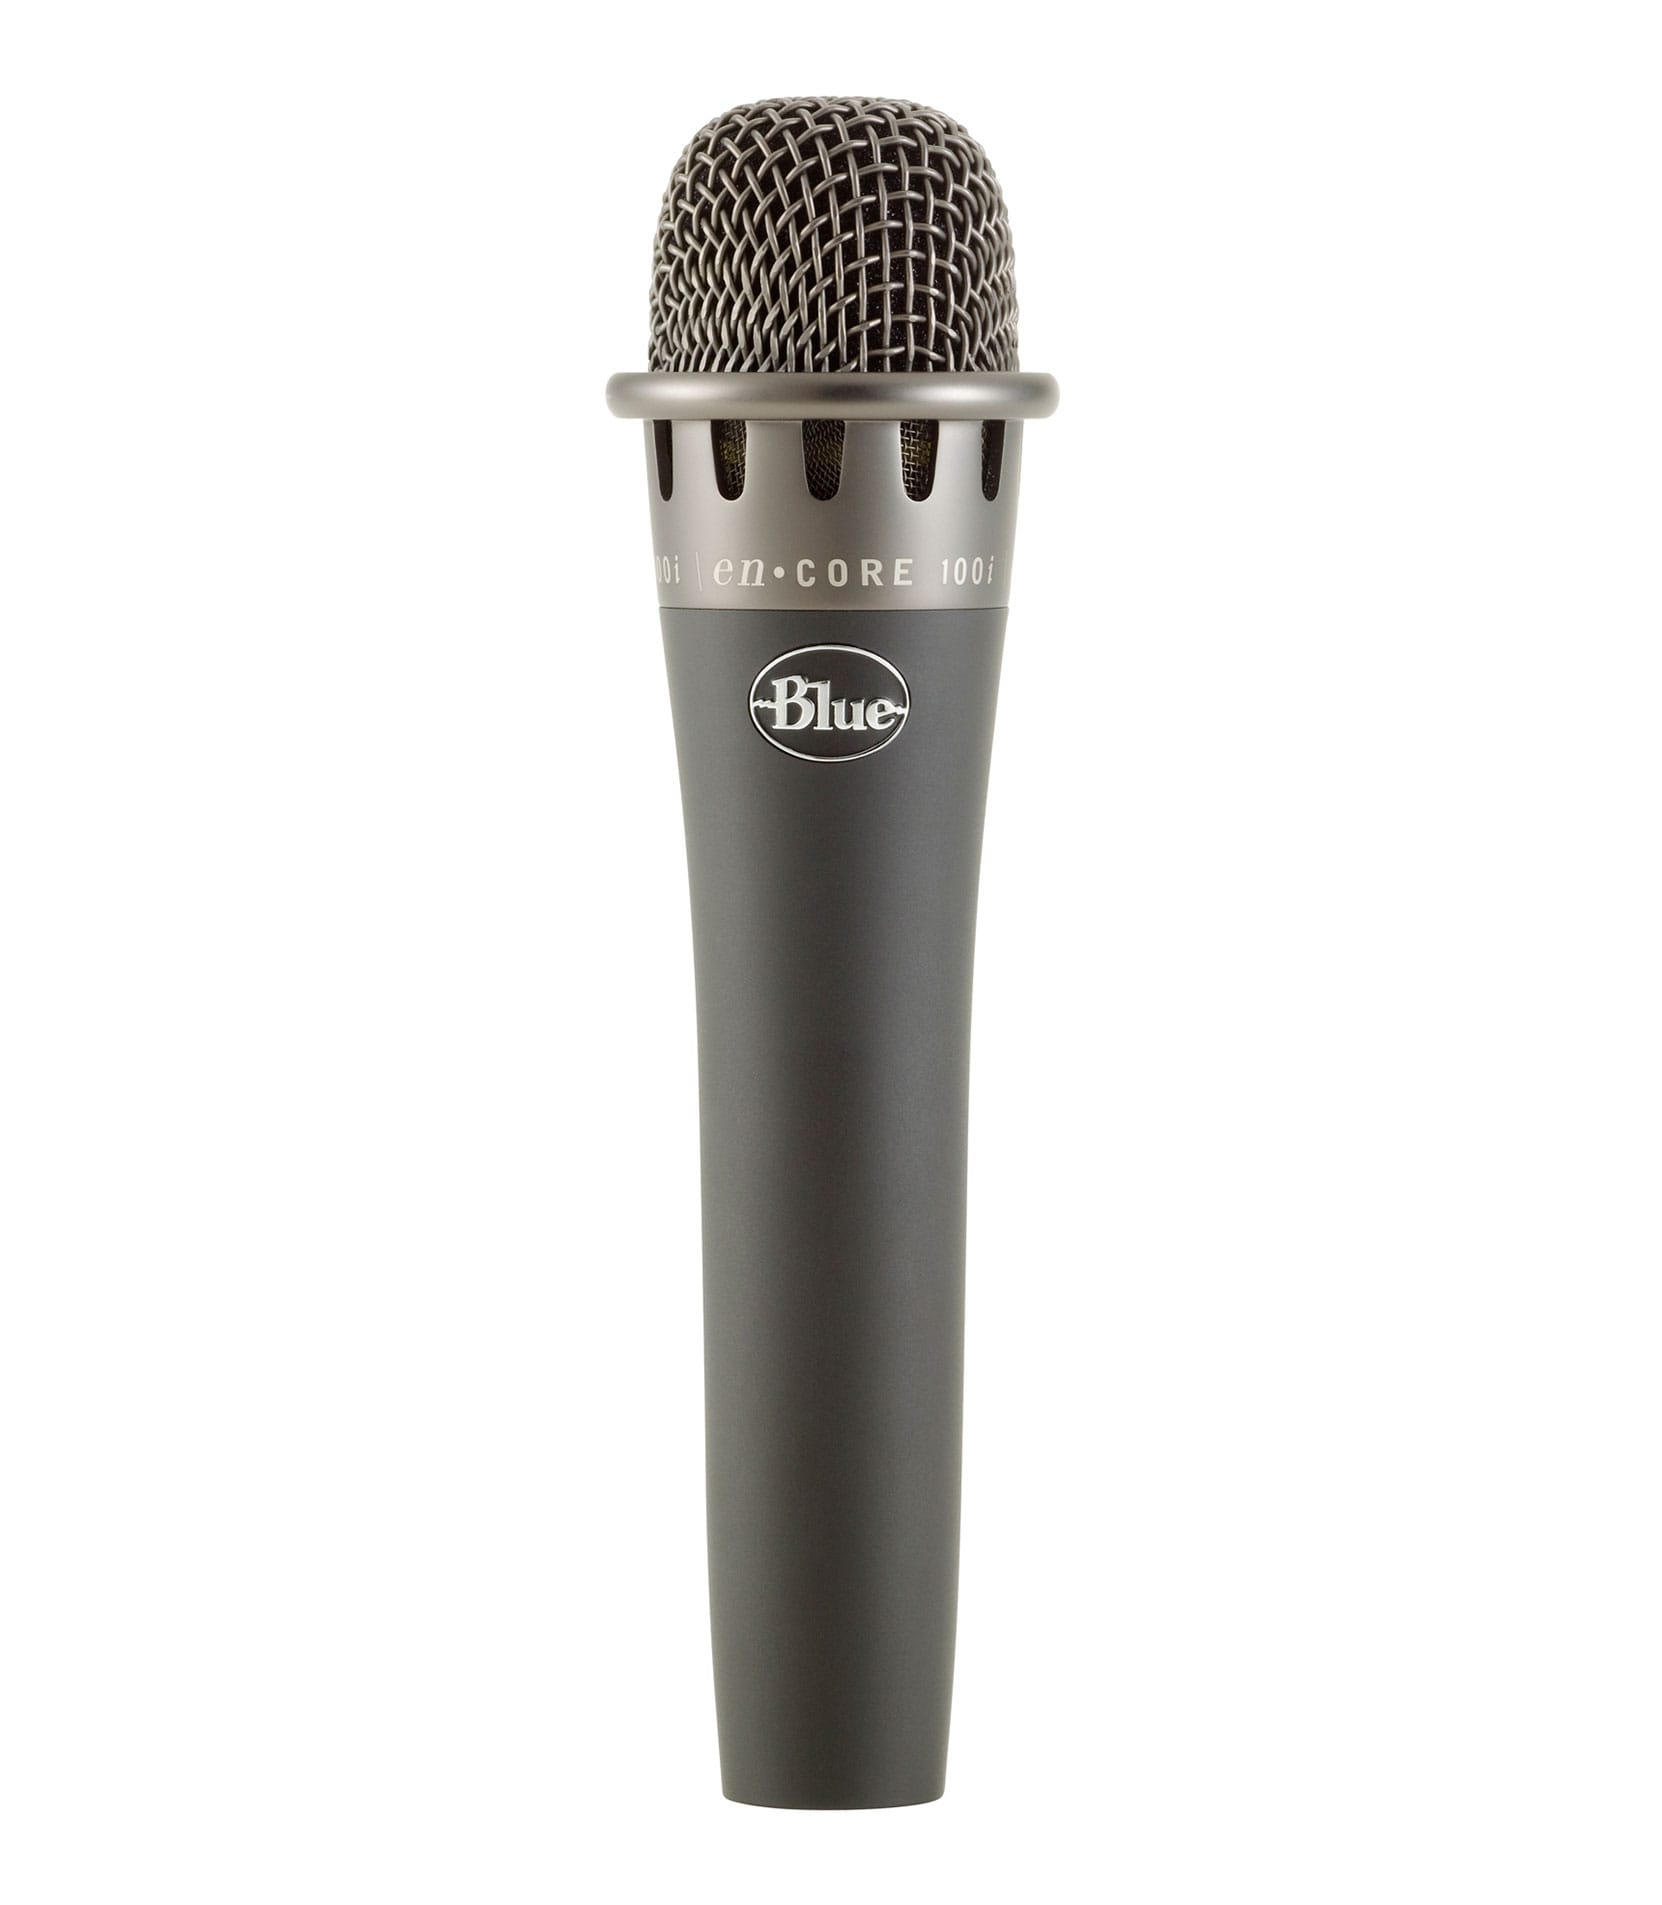 buy blue encore 100i cardioid dynamic instrument microphone